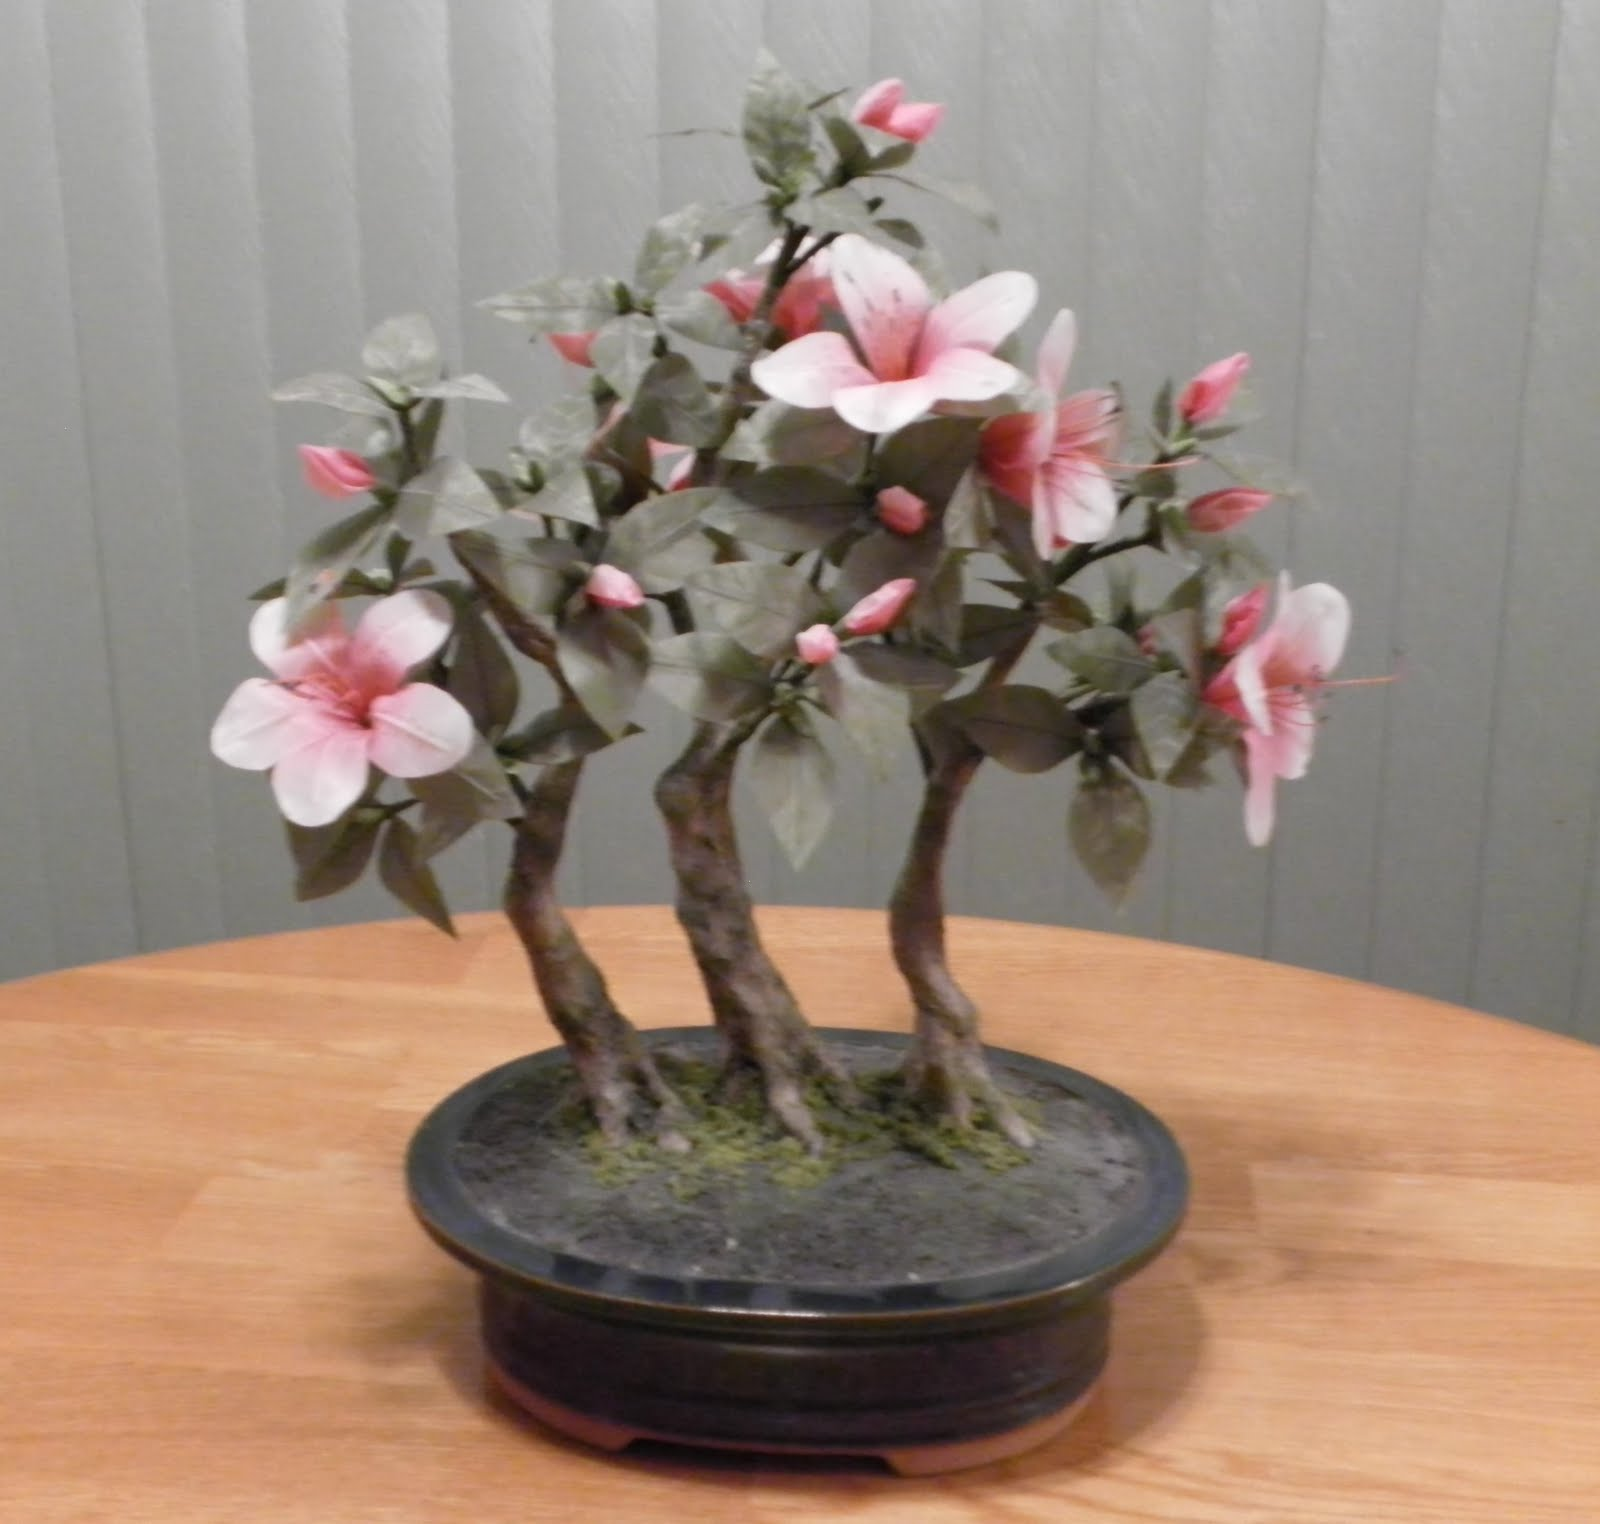 Amanda39s Blog Zokei Bonsai